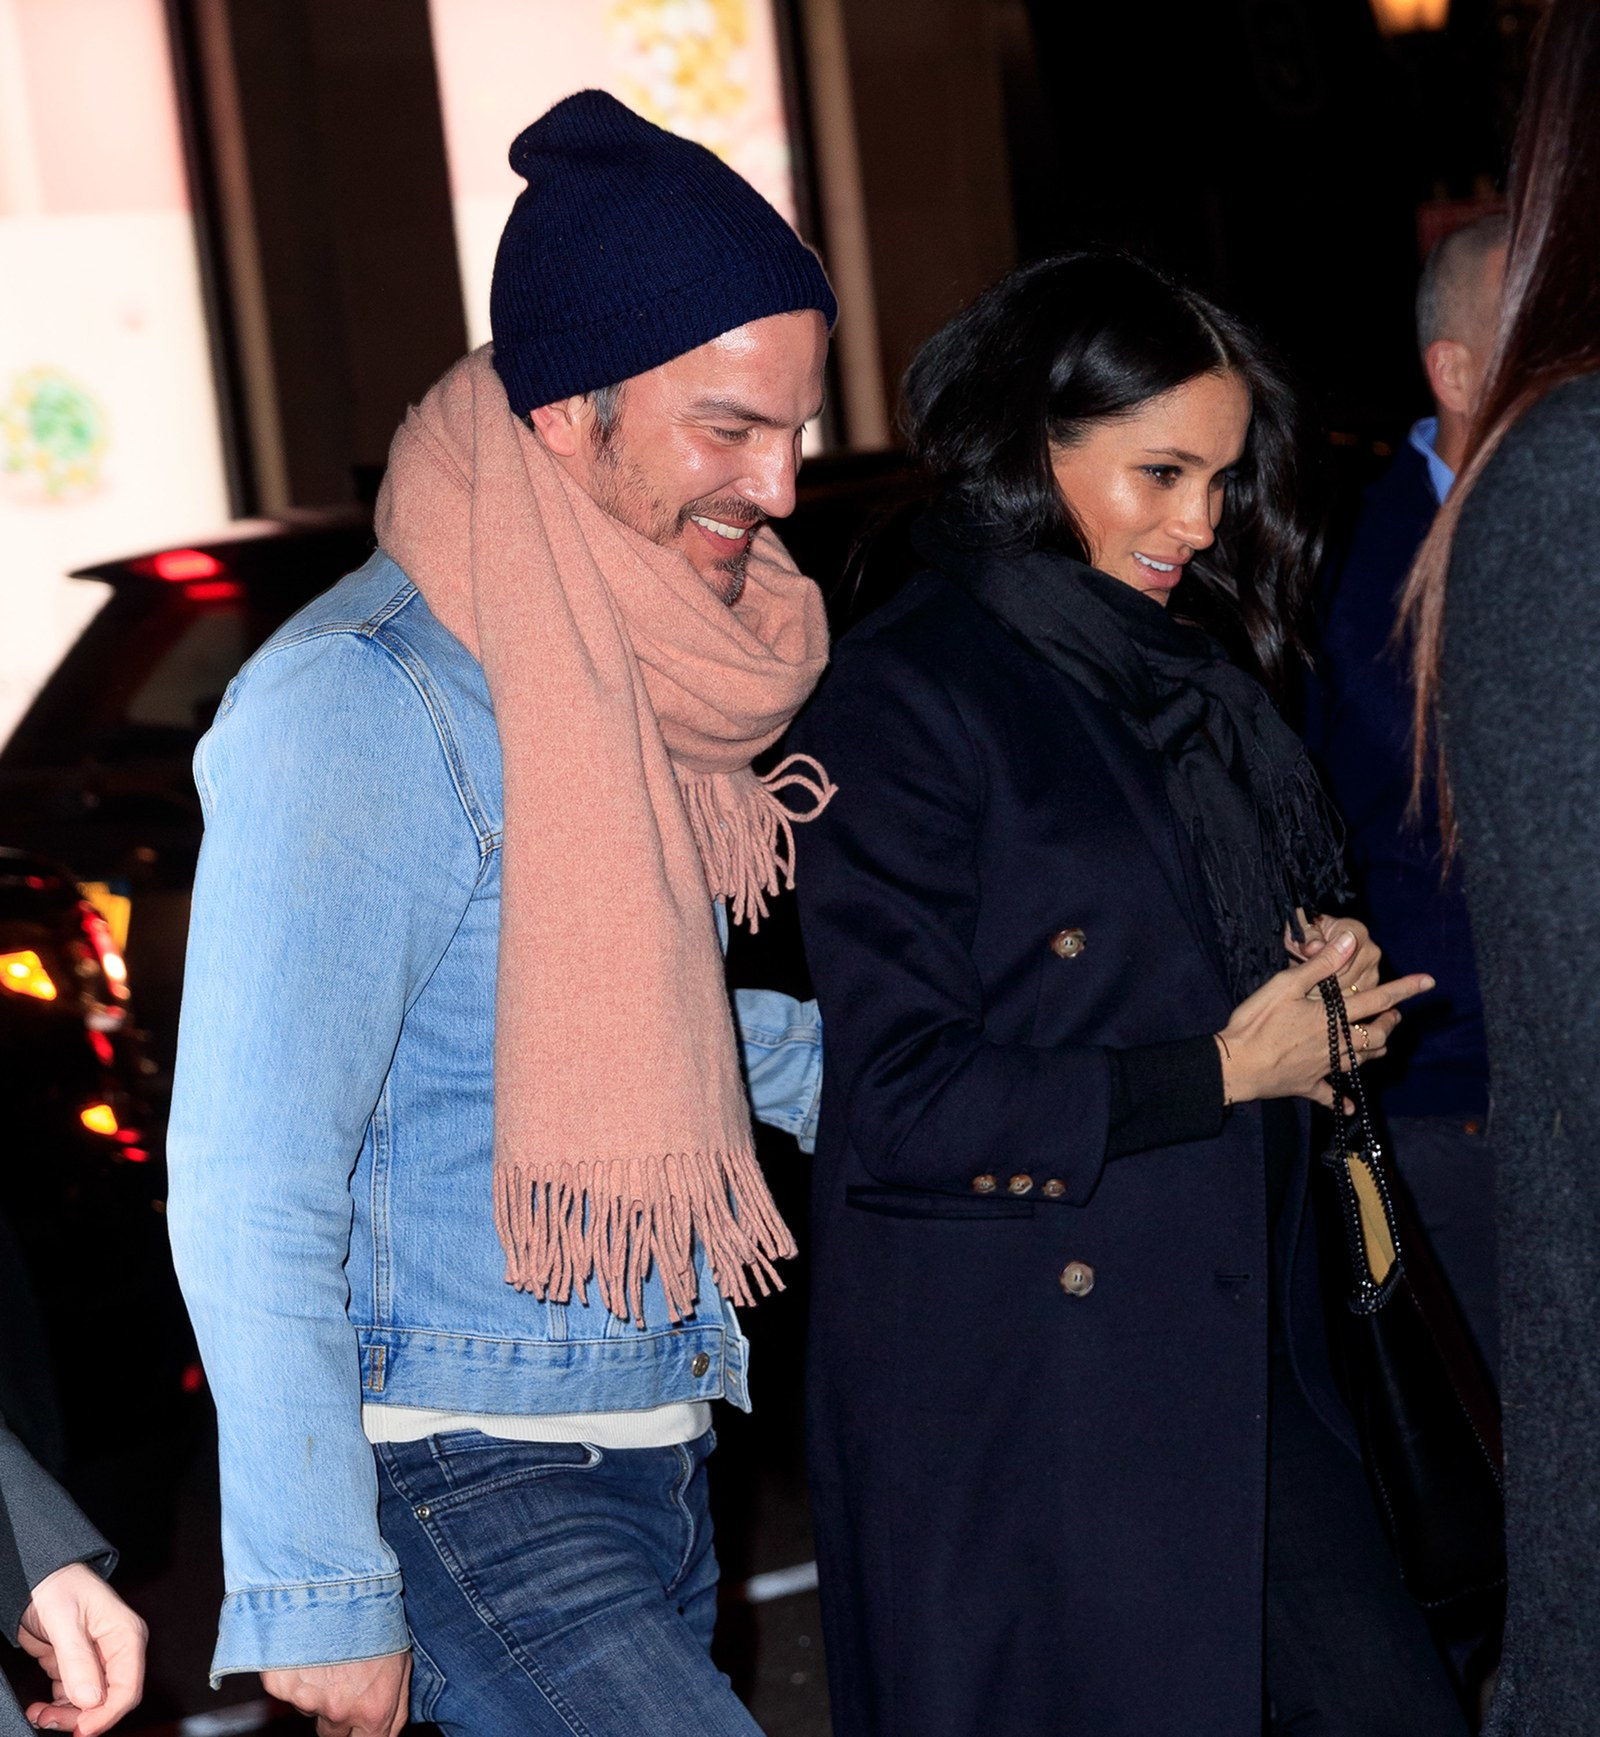 Meghan Markle and a friend in New York City in February 2019.